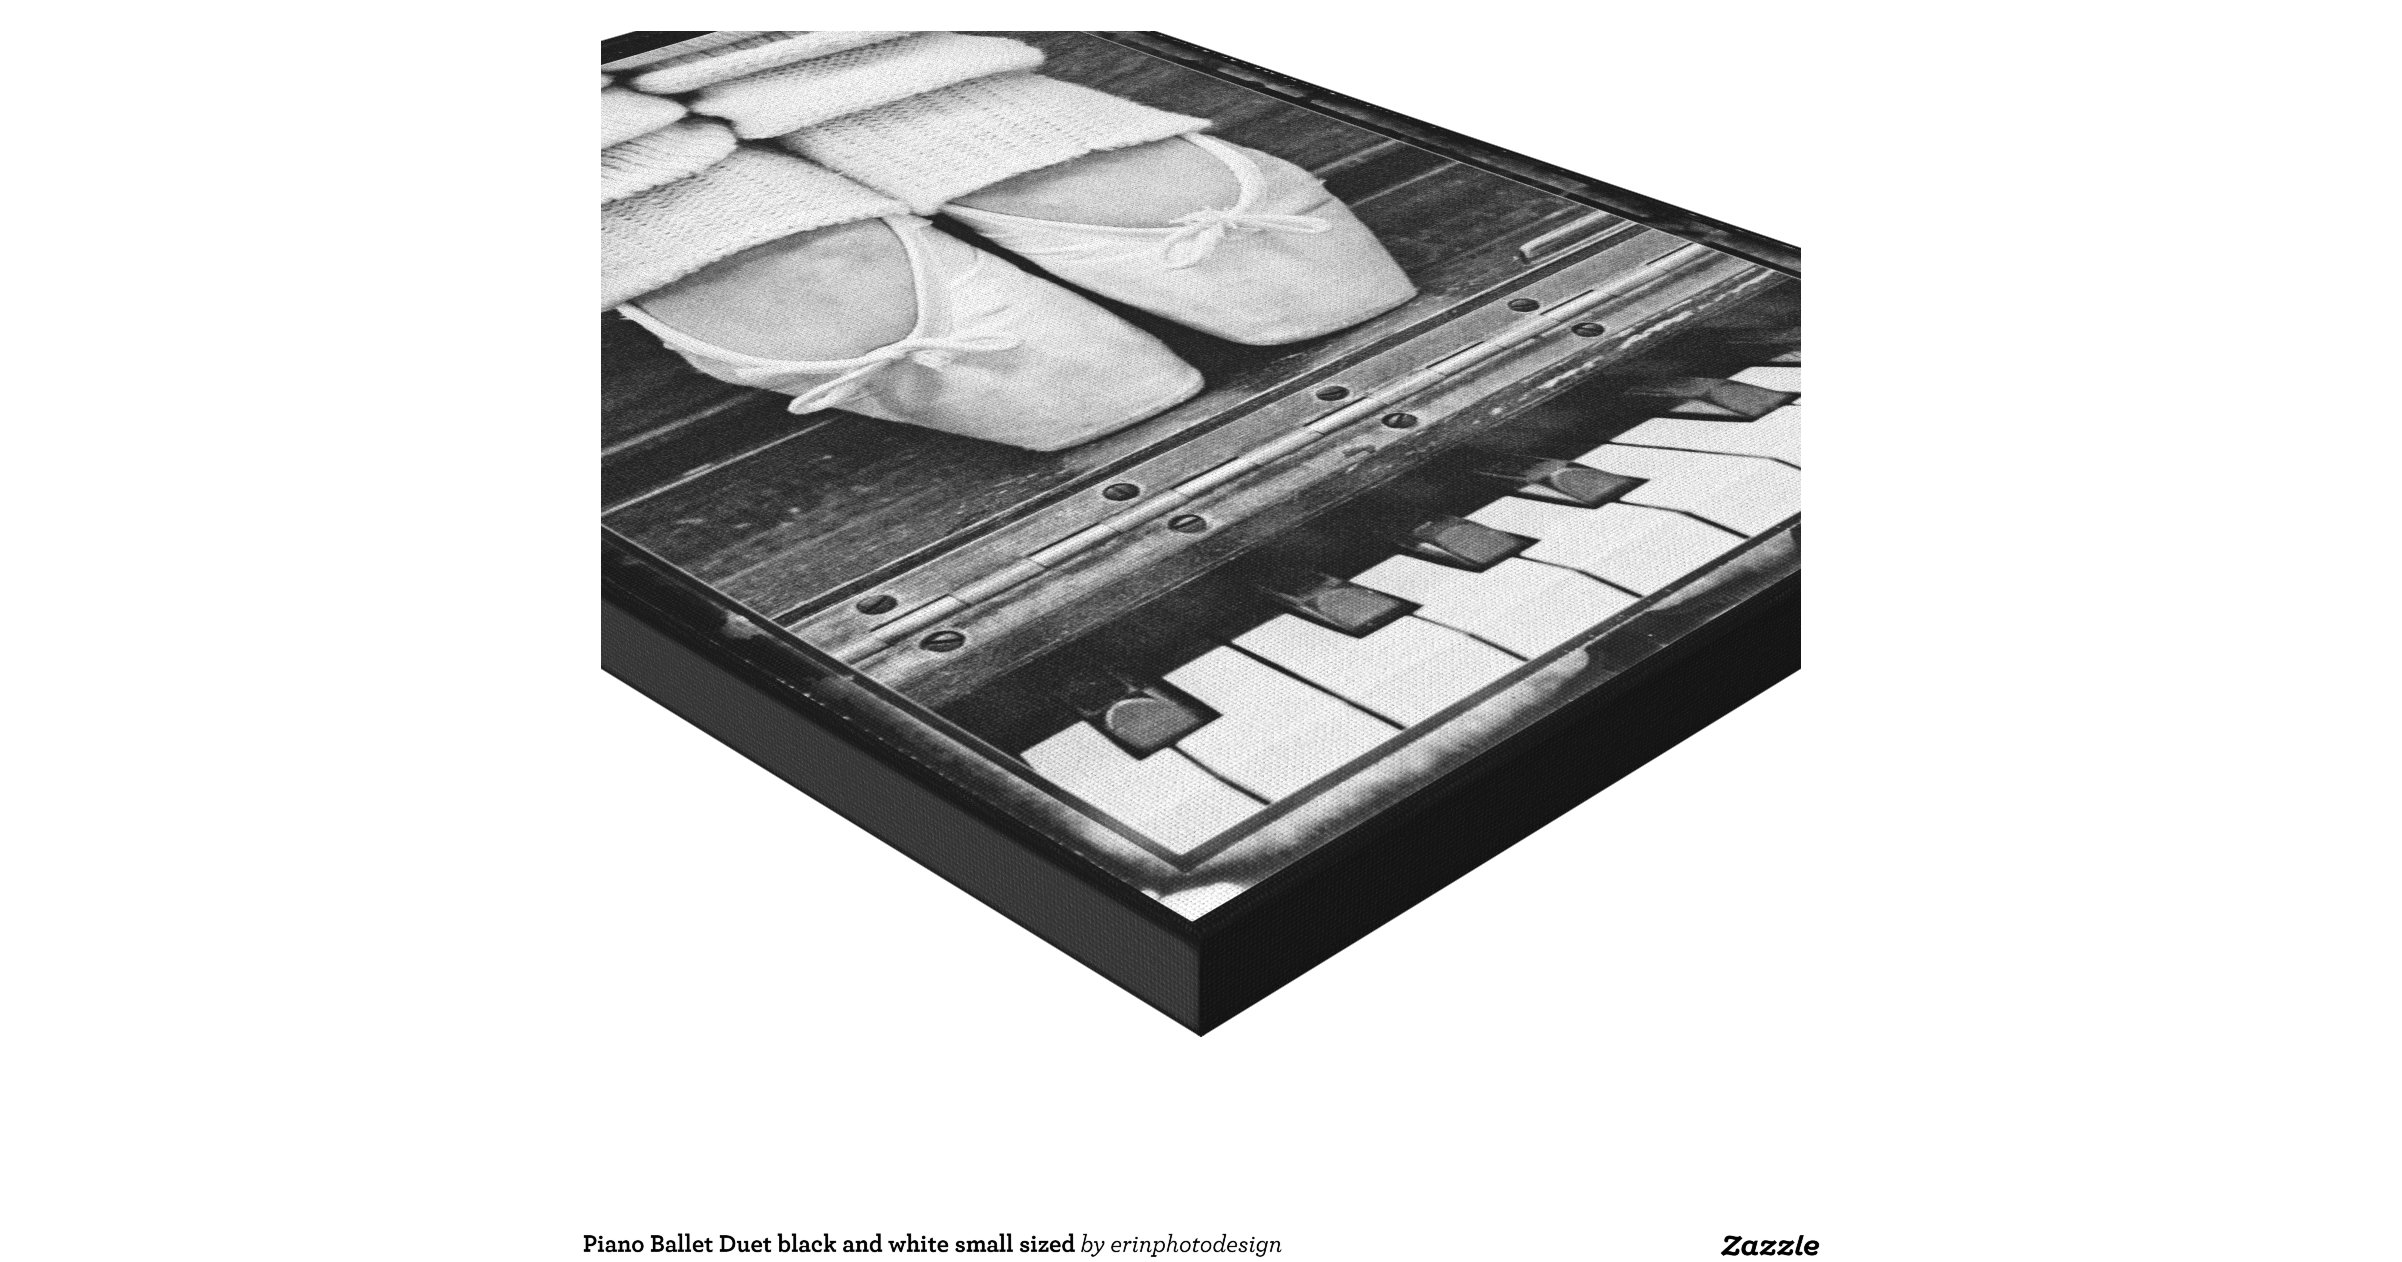 Piano ballet duet black and white small sized stretched for Small size piano